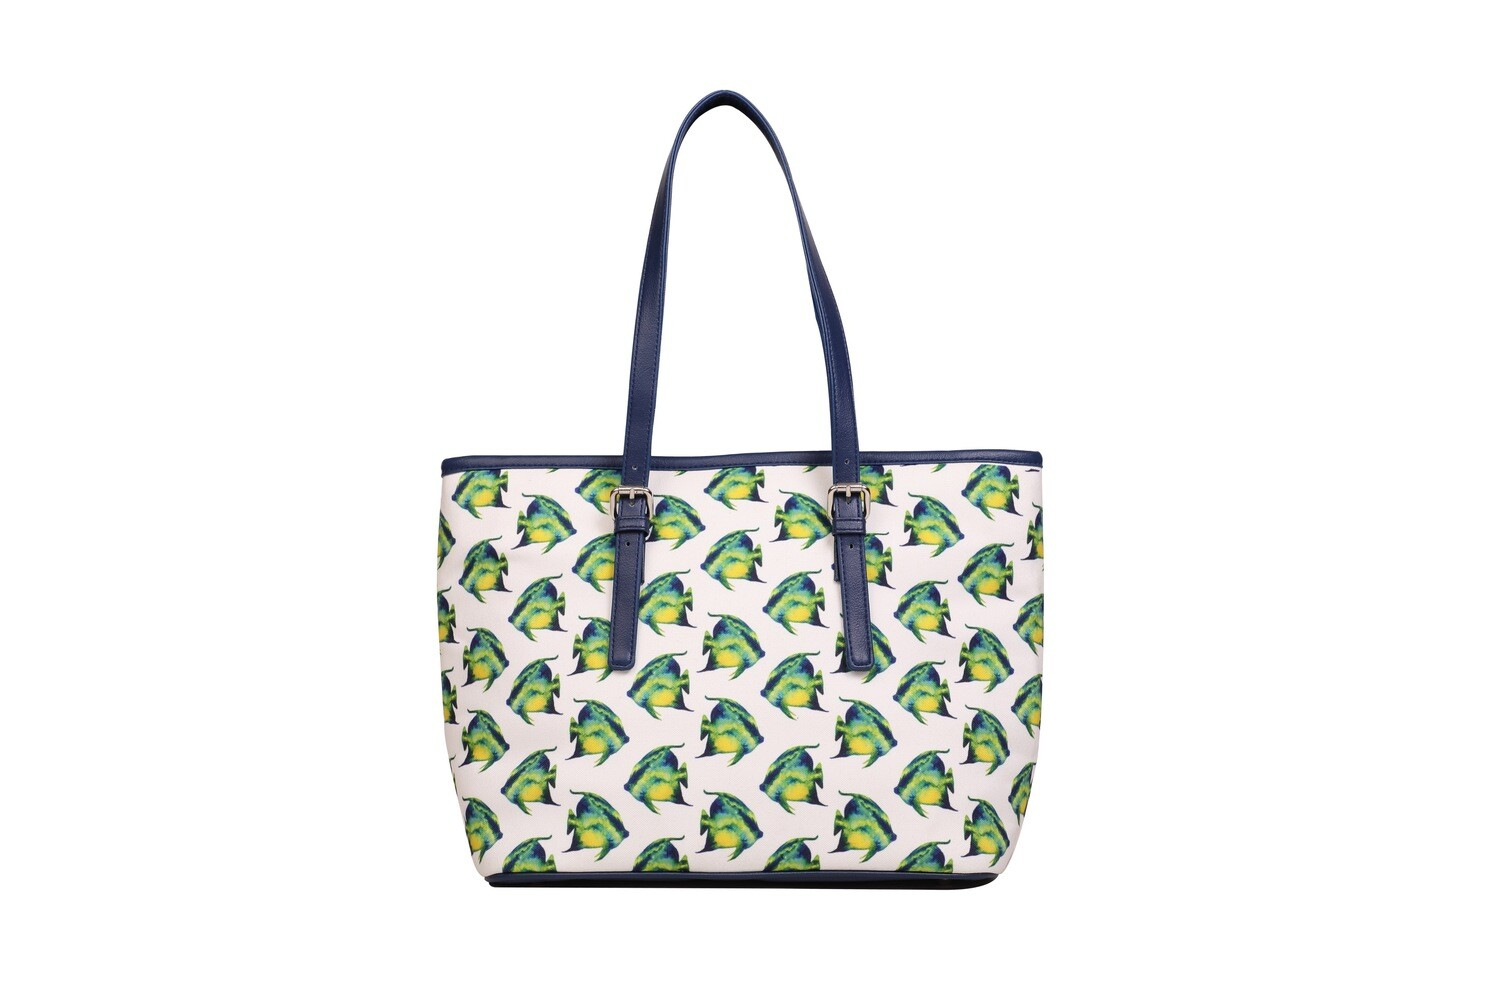 White large tote bag with Fish Print